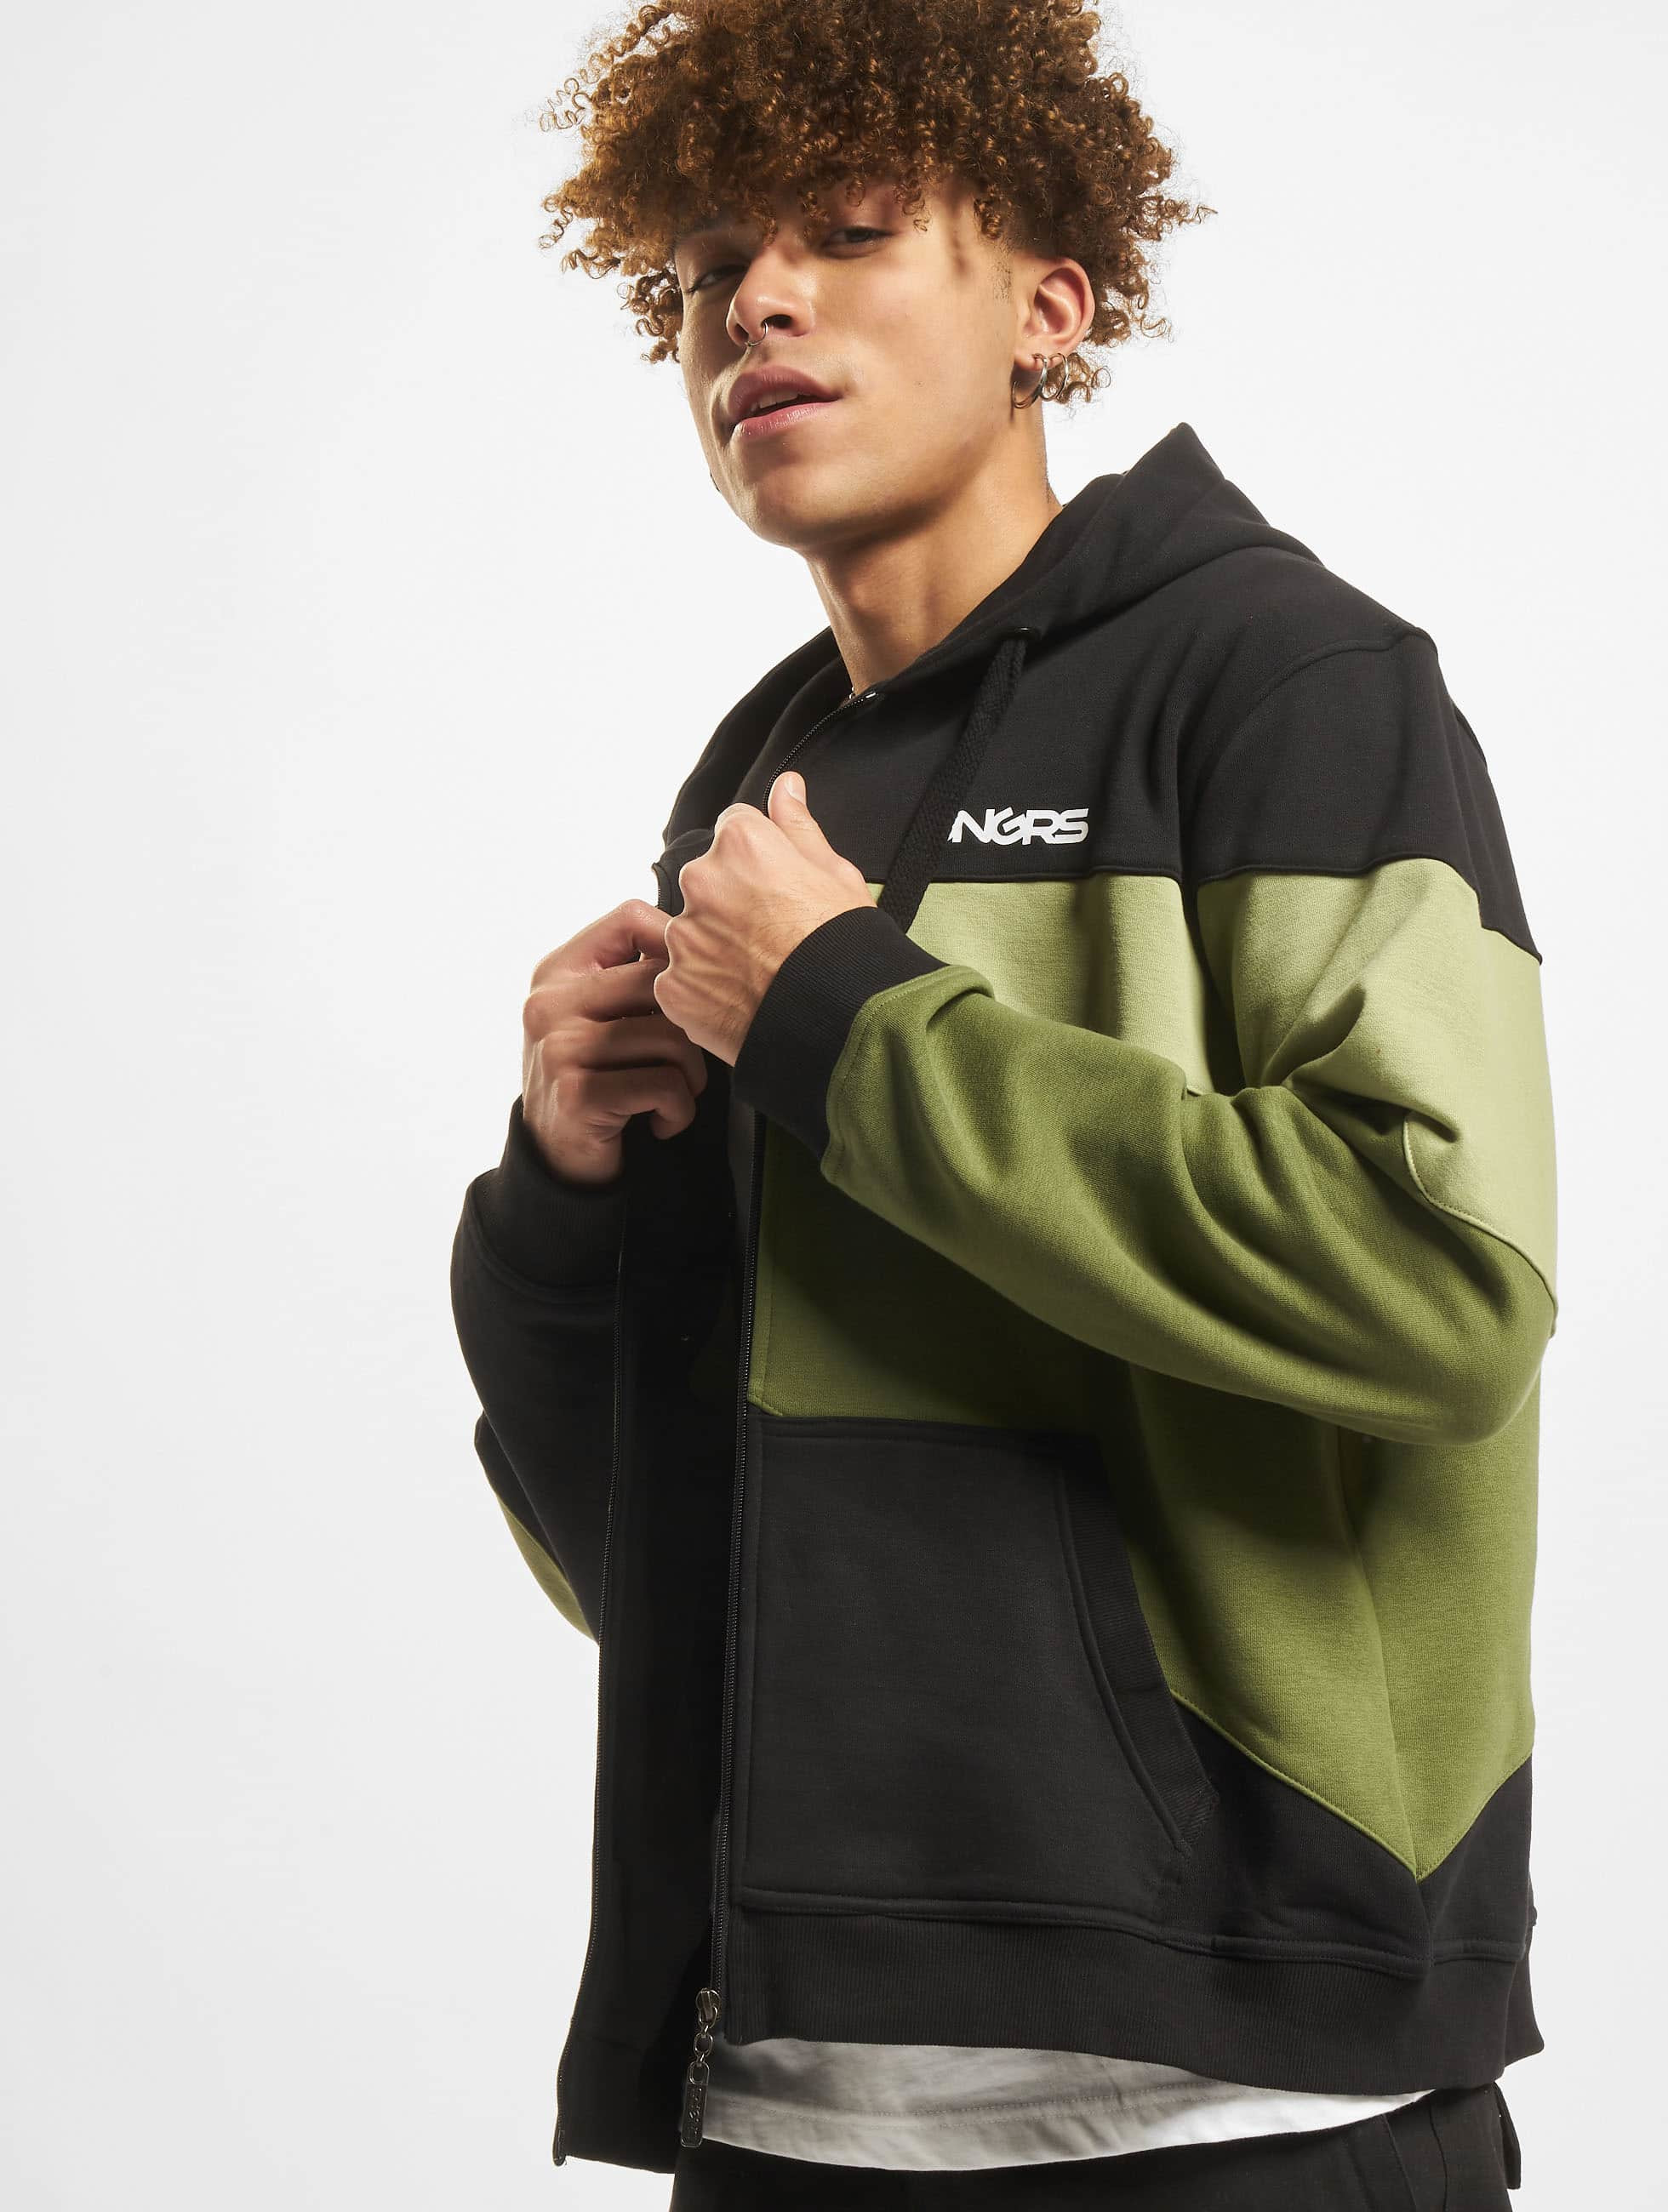 Dangerous DNGRS / Zip Hoodie Limited Edition II Race City in camouflage 4XL